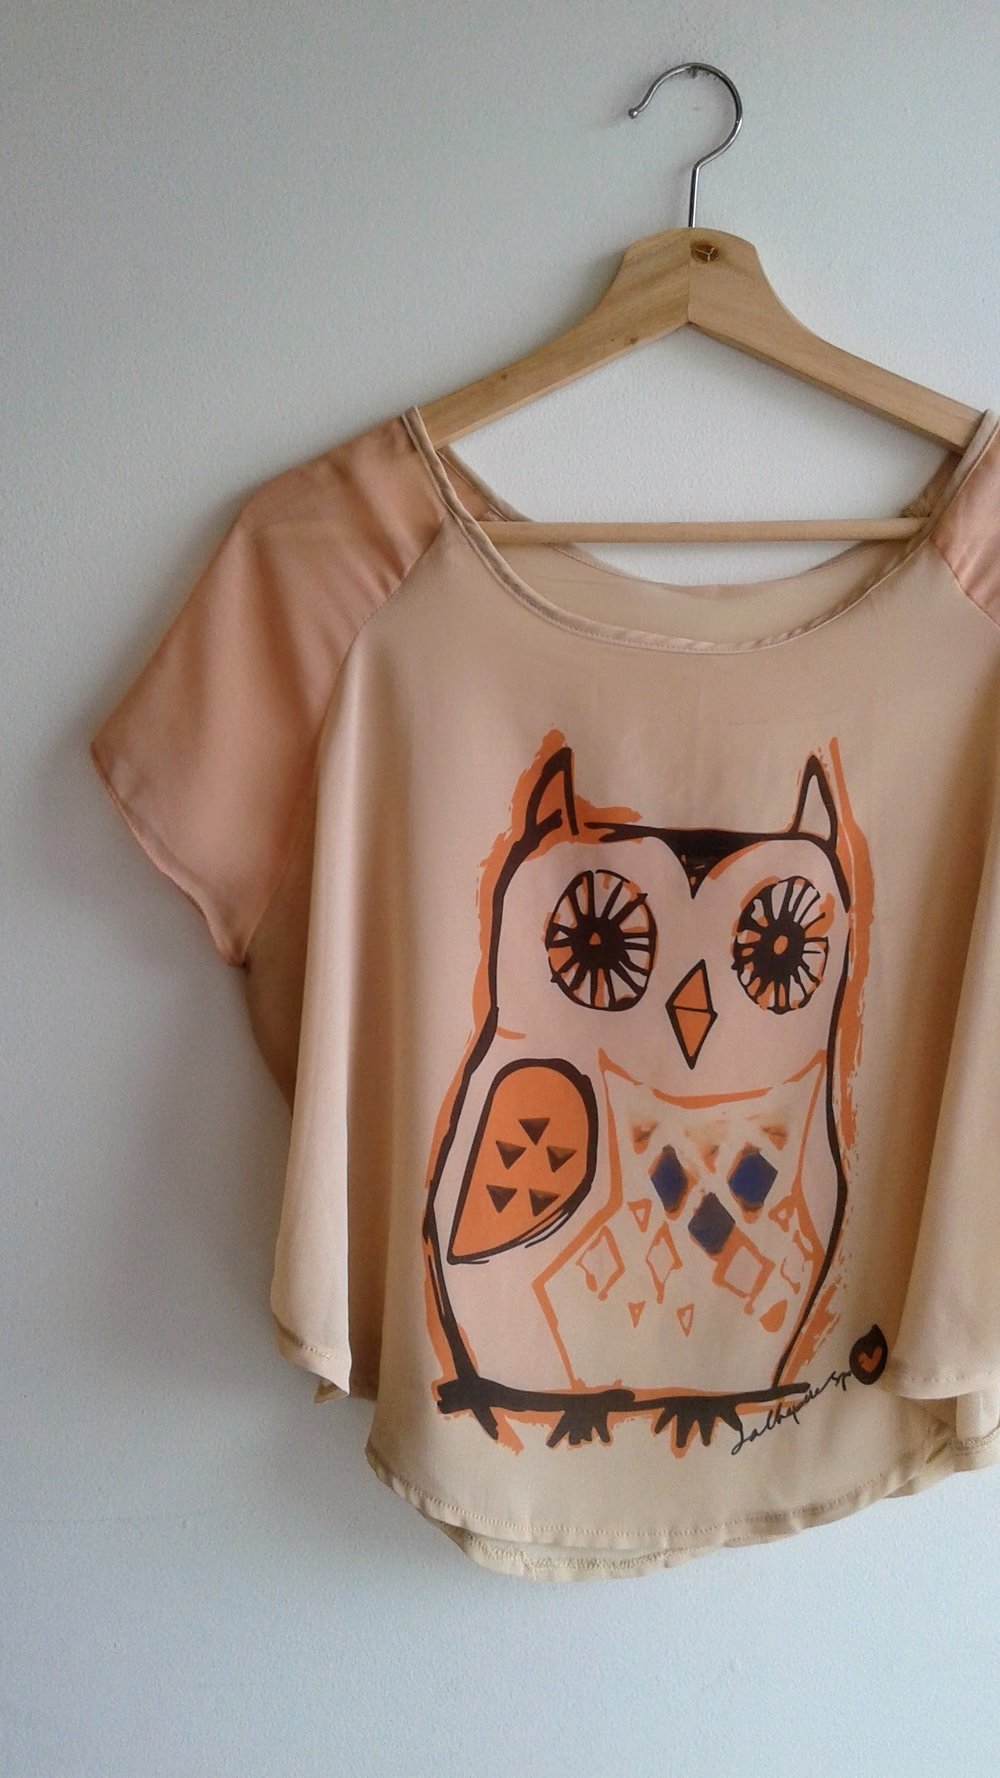 Owl top; Size M, $16